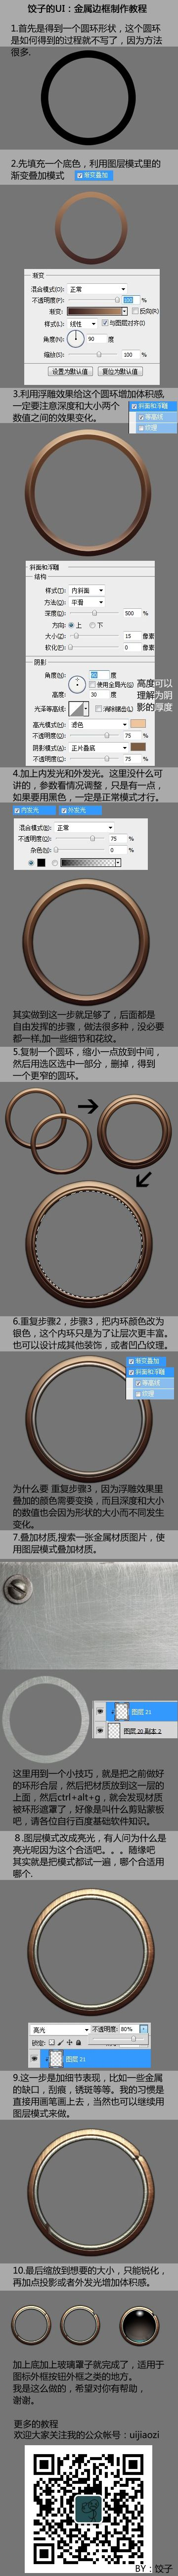 金属质感边框简易教程 | GAMEUI- ... Brushed metal ring painting drawing resource tool how…